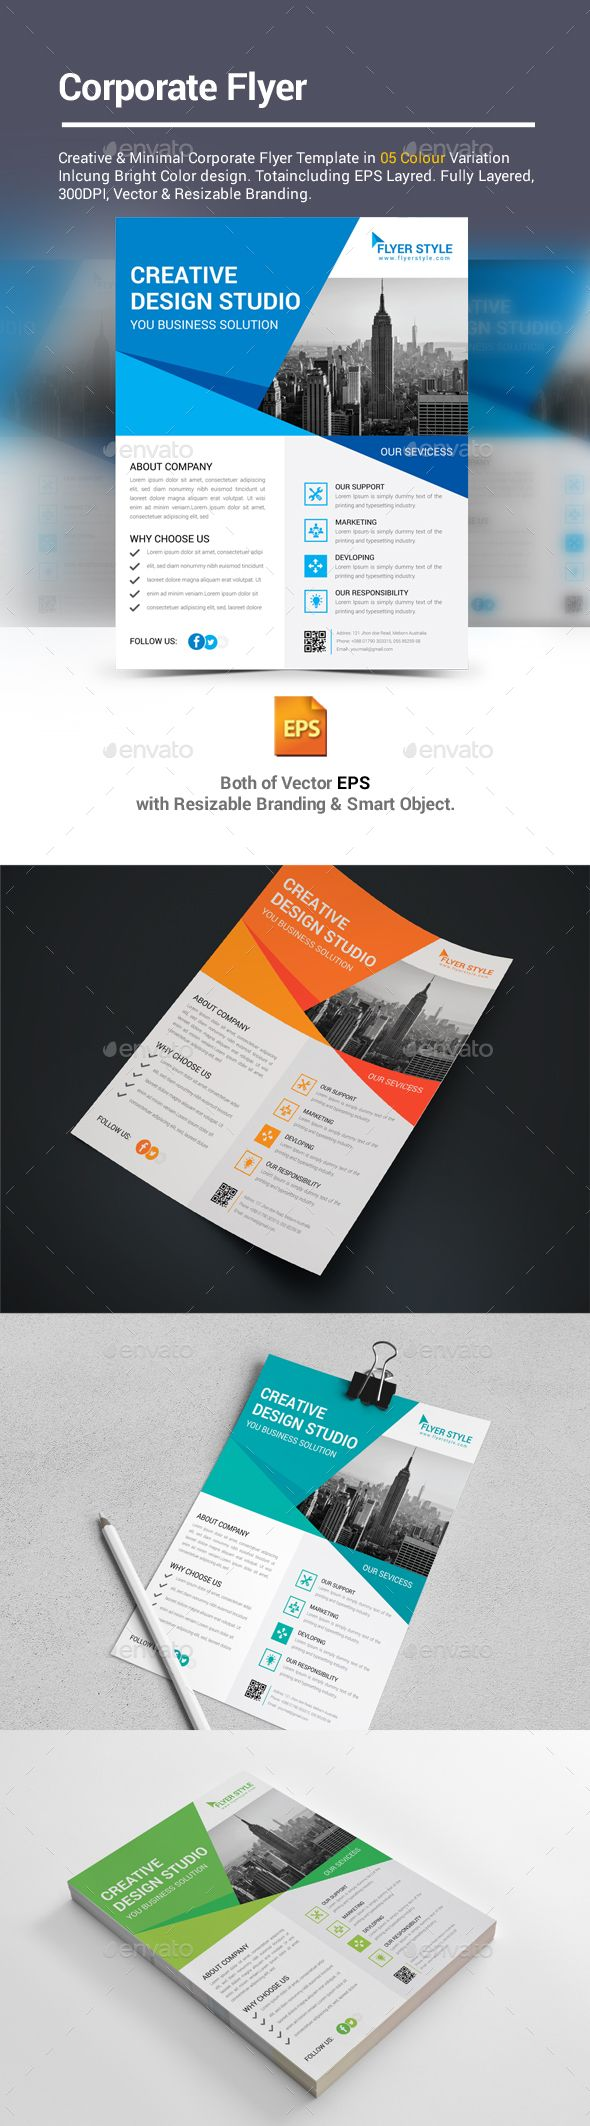 Corporate Flyer Template Vector EPS. Download here: https://graphicriver.net/item/corporate-flyer/17207618?ref=ksioks